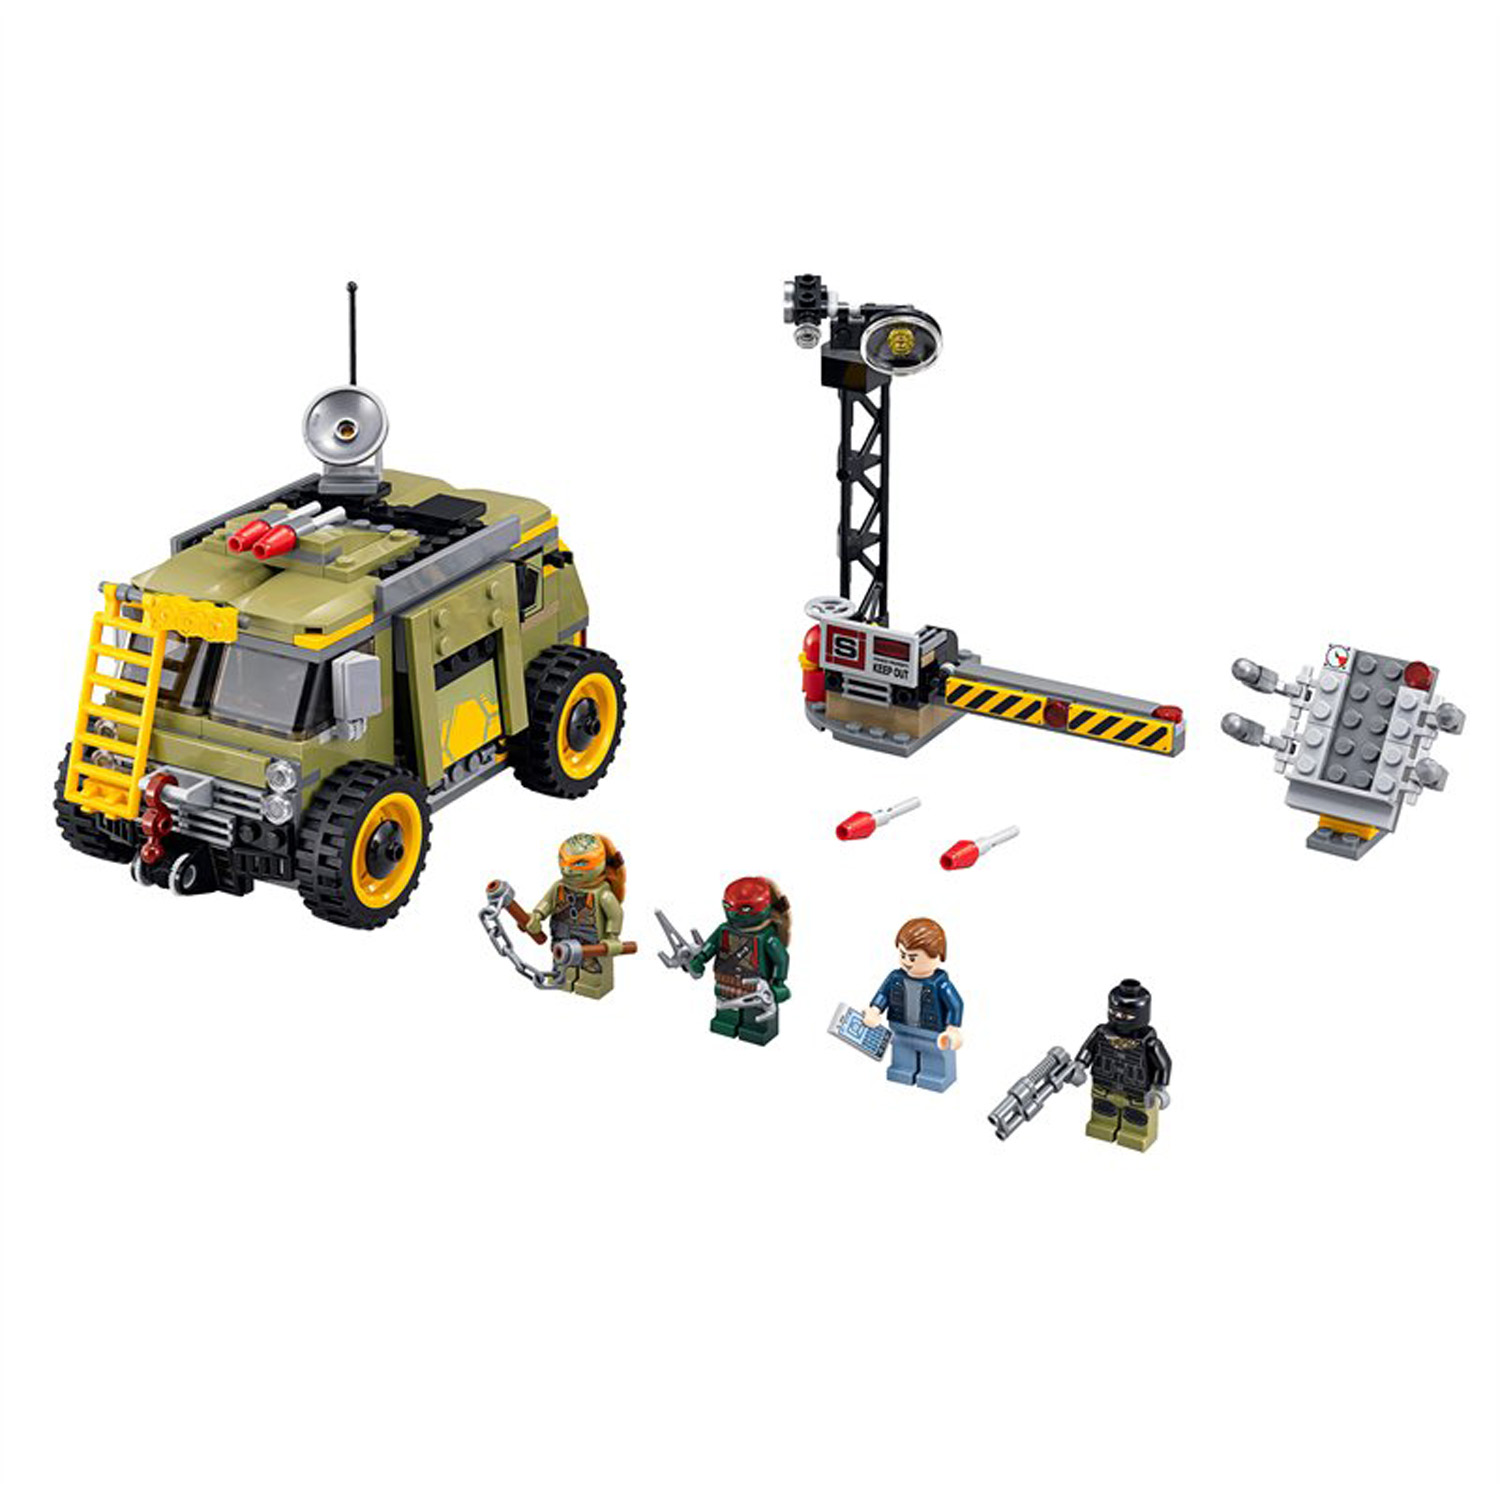 LEGO x Teenage Mutant Ninja Turtles Movie Set 3